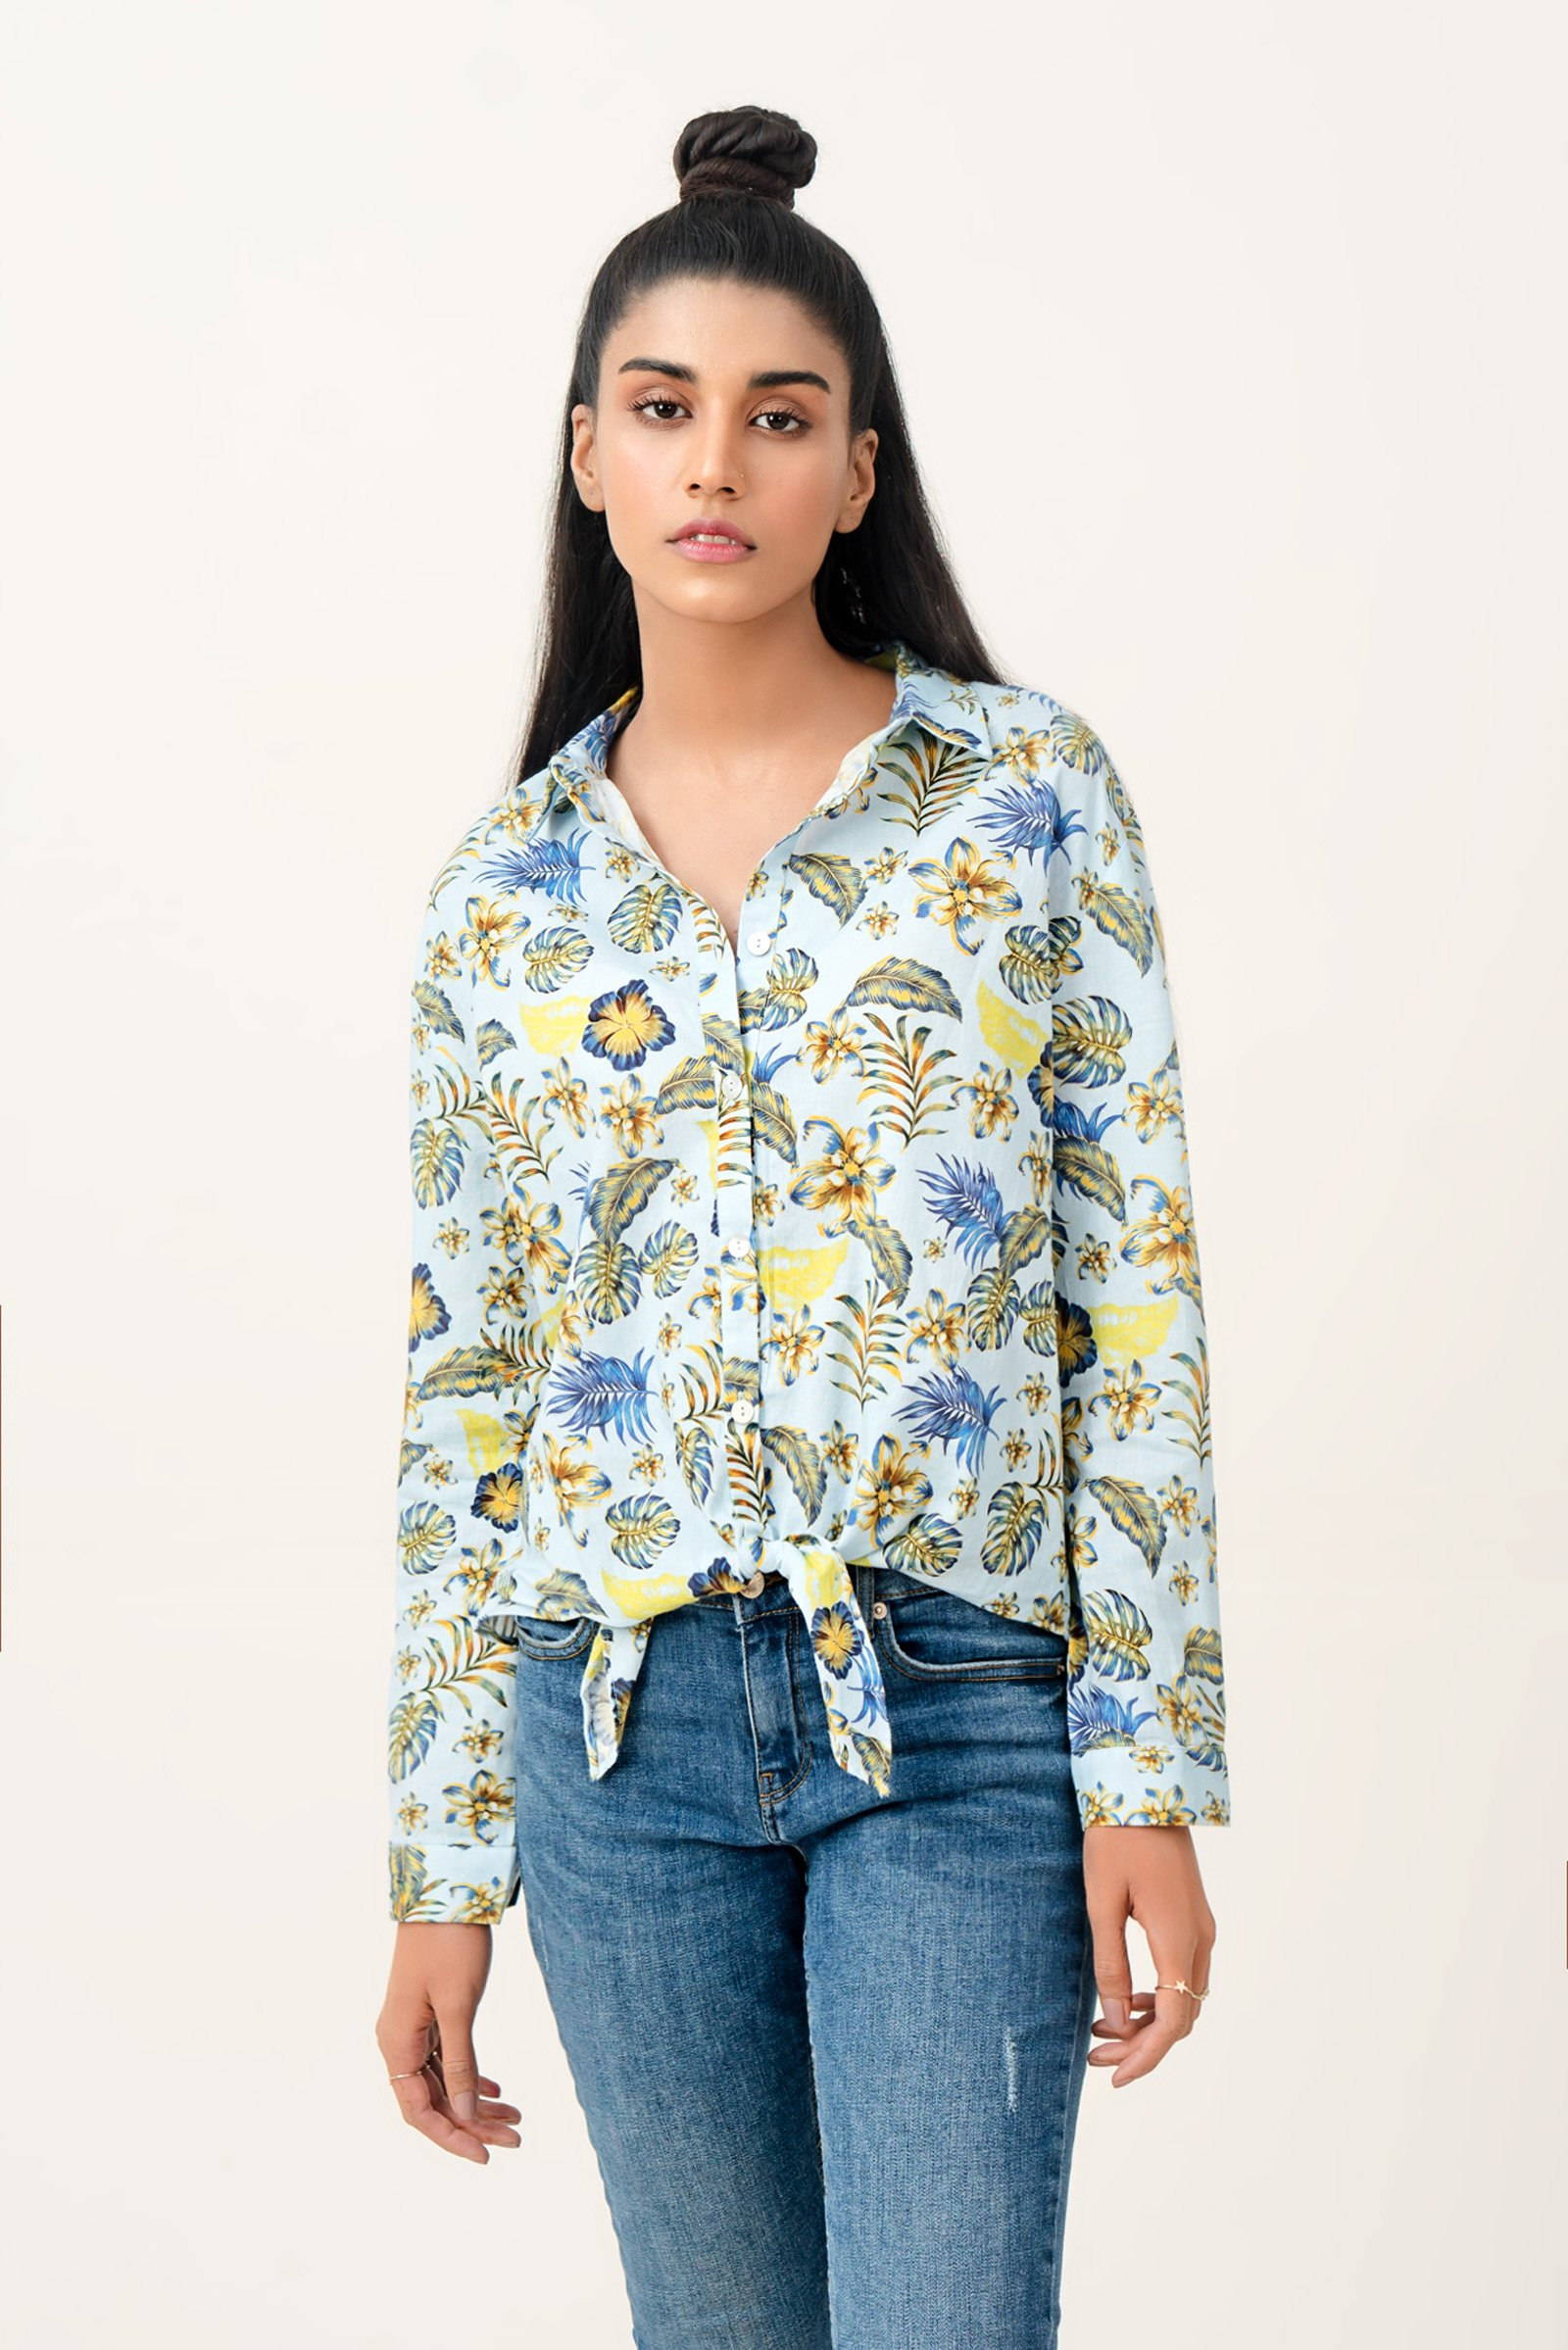 Bow Style Shirt